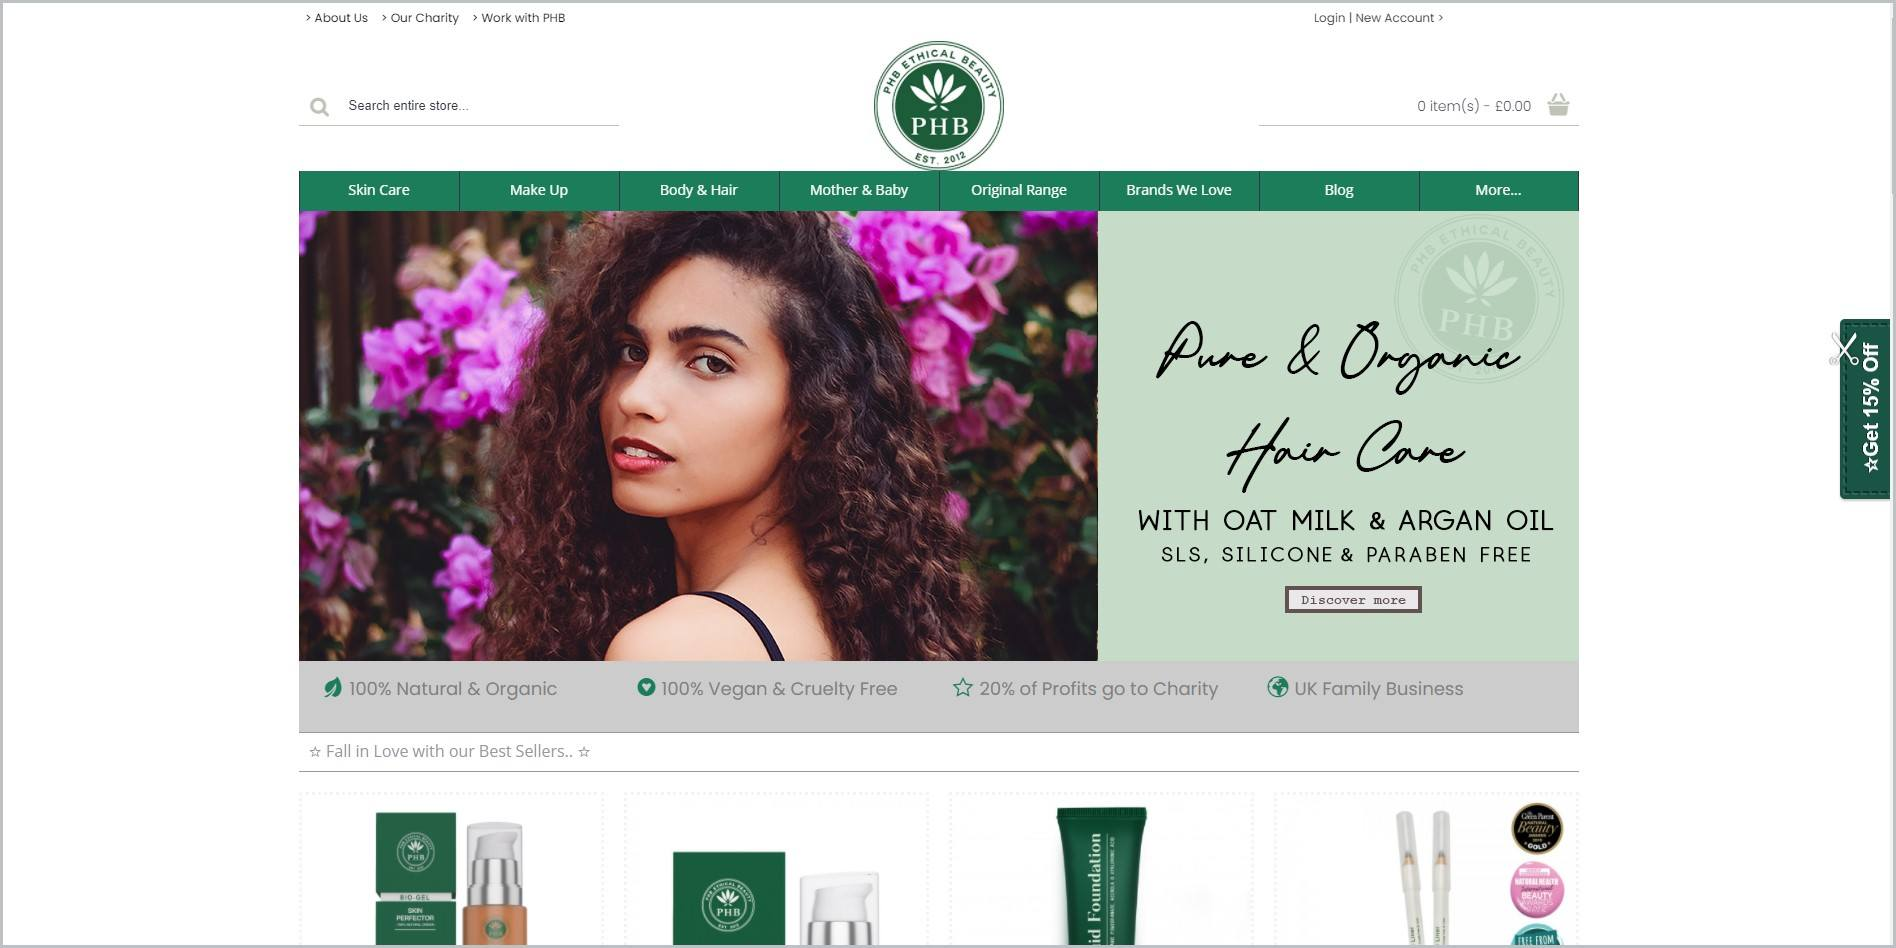 screenshot of PHB Ethical Beauty homepage, with white header with the website's name and logo, underneath it is the green main navigation bar, it also showcases an image of a woman as well as some of the website's products